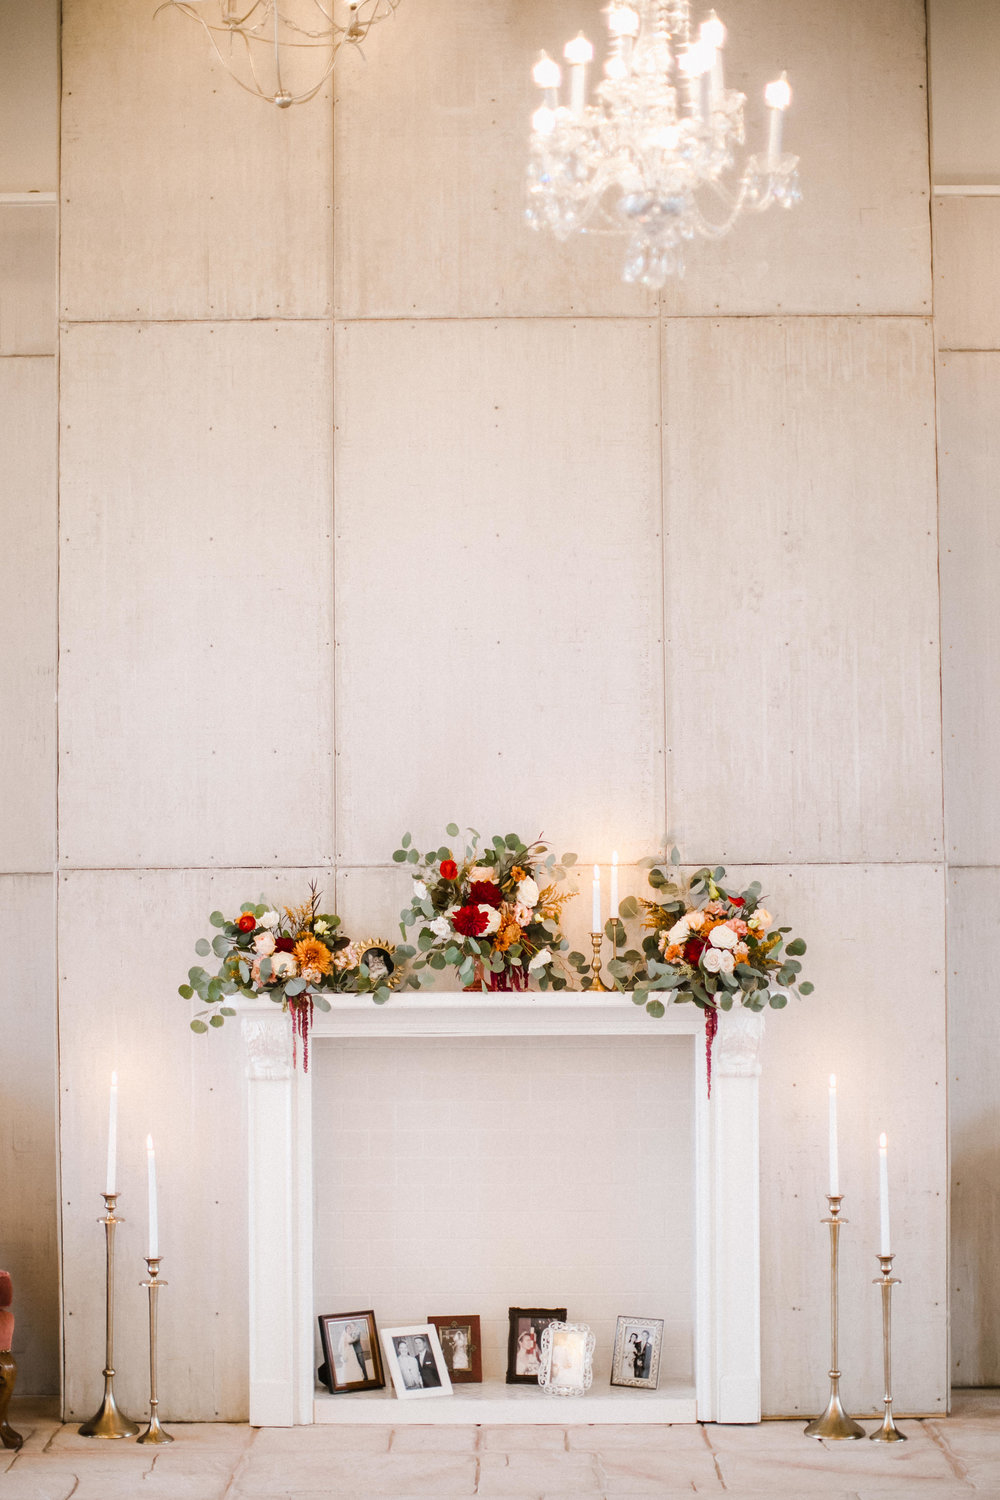 Luminary Fern Brainerd Wedding Venue Aimee Jobe Photography-51.jpg